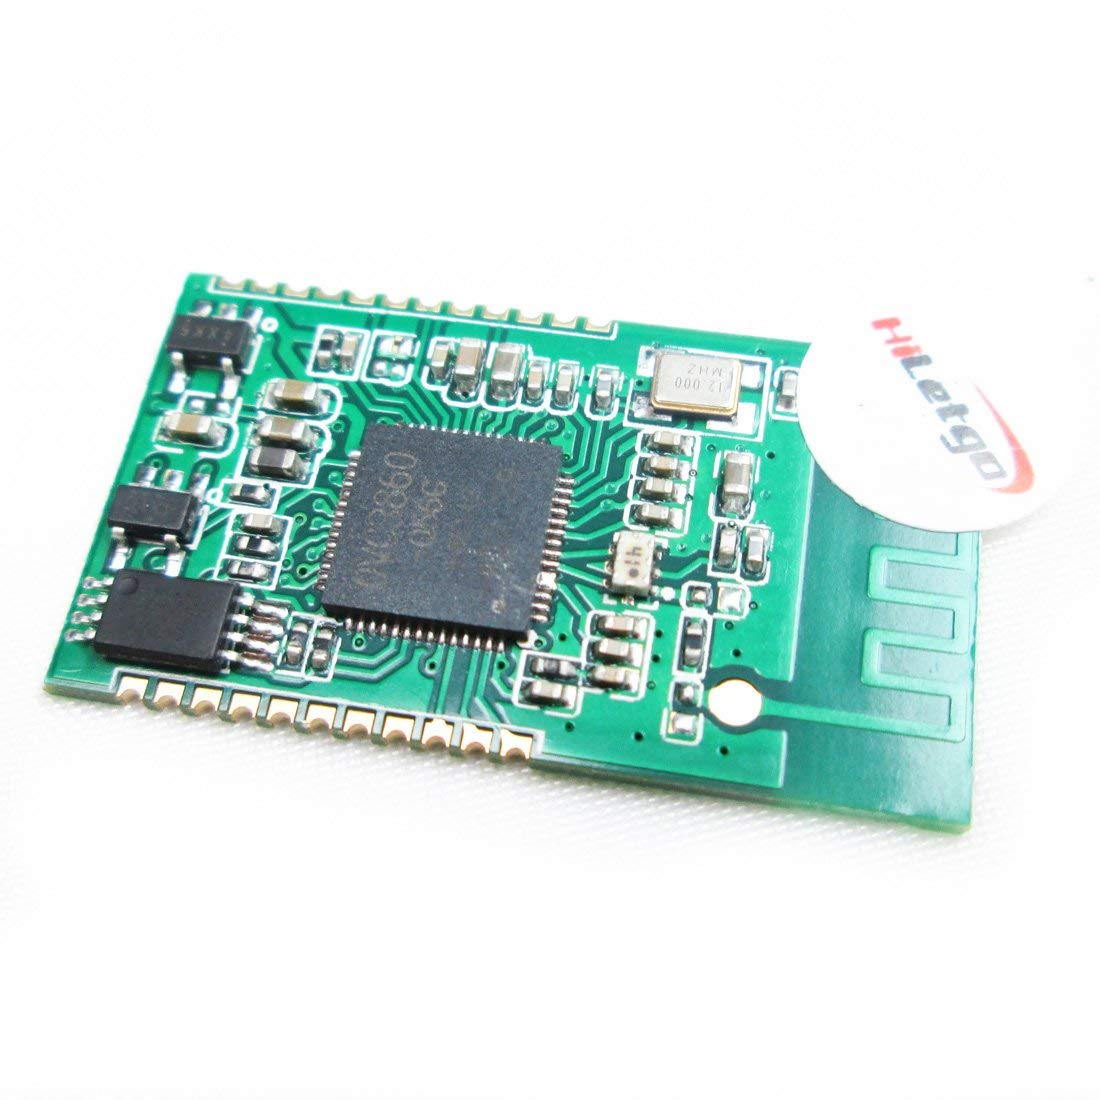 XS3868 Bluetooth Stereo Audio Module OVC3860 Stereo Bluetooth BT Module Supports A2DP AVRCP